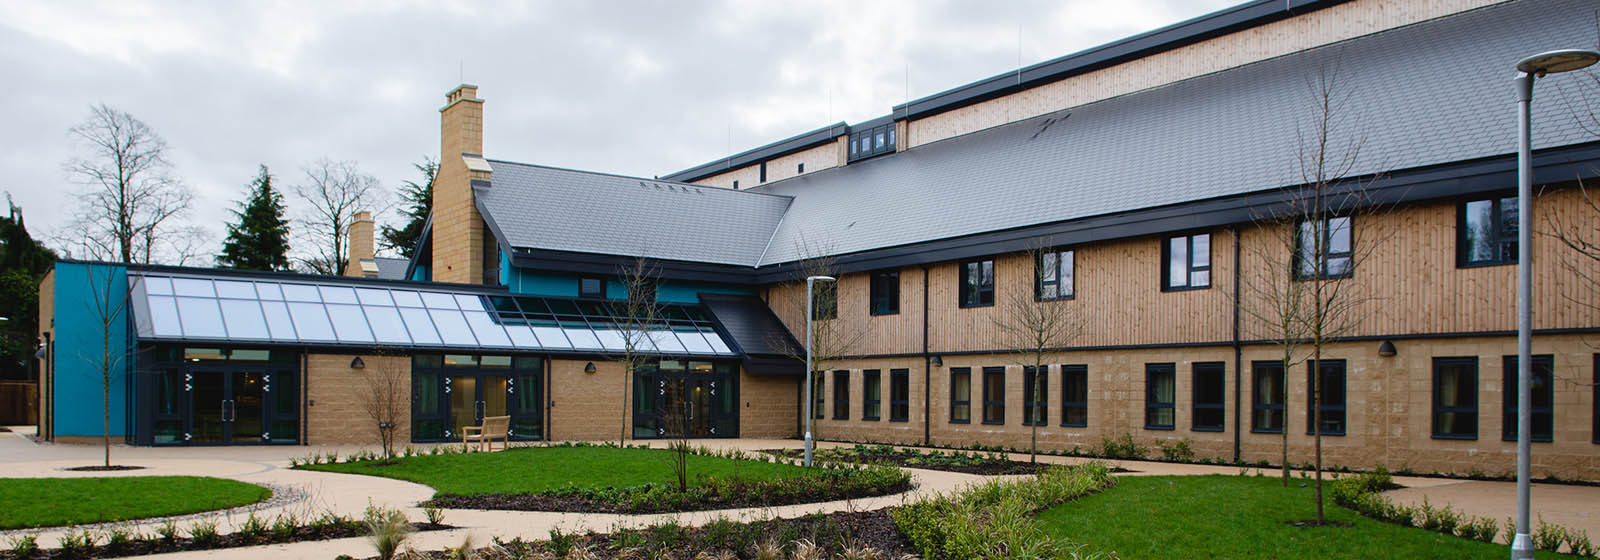 Tanworth Lane Dementia And Extra Care Facility One Creative Environments